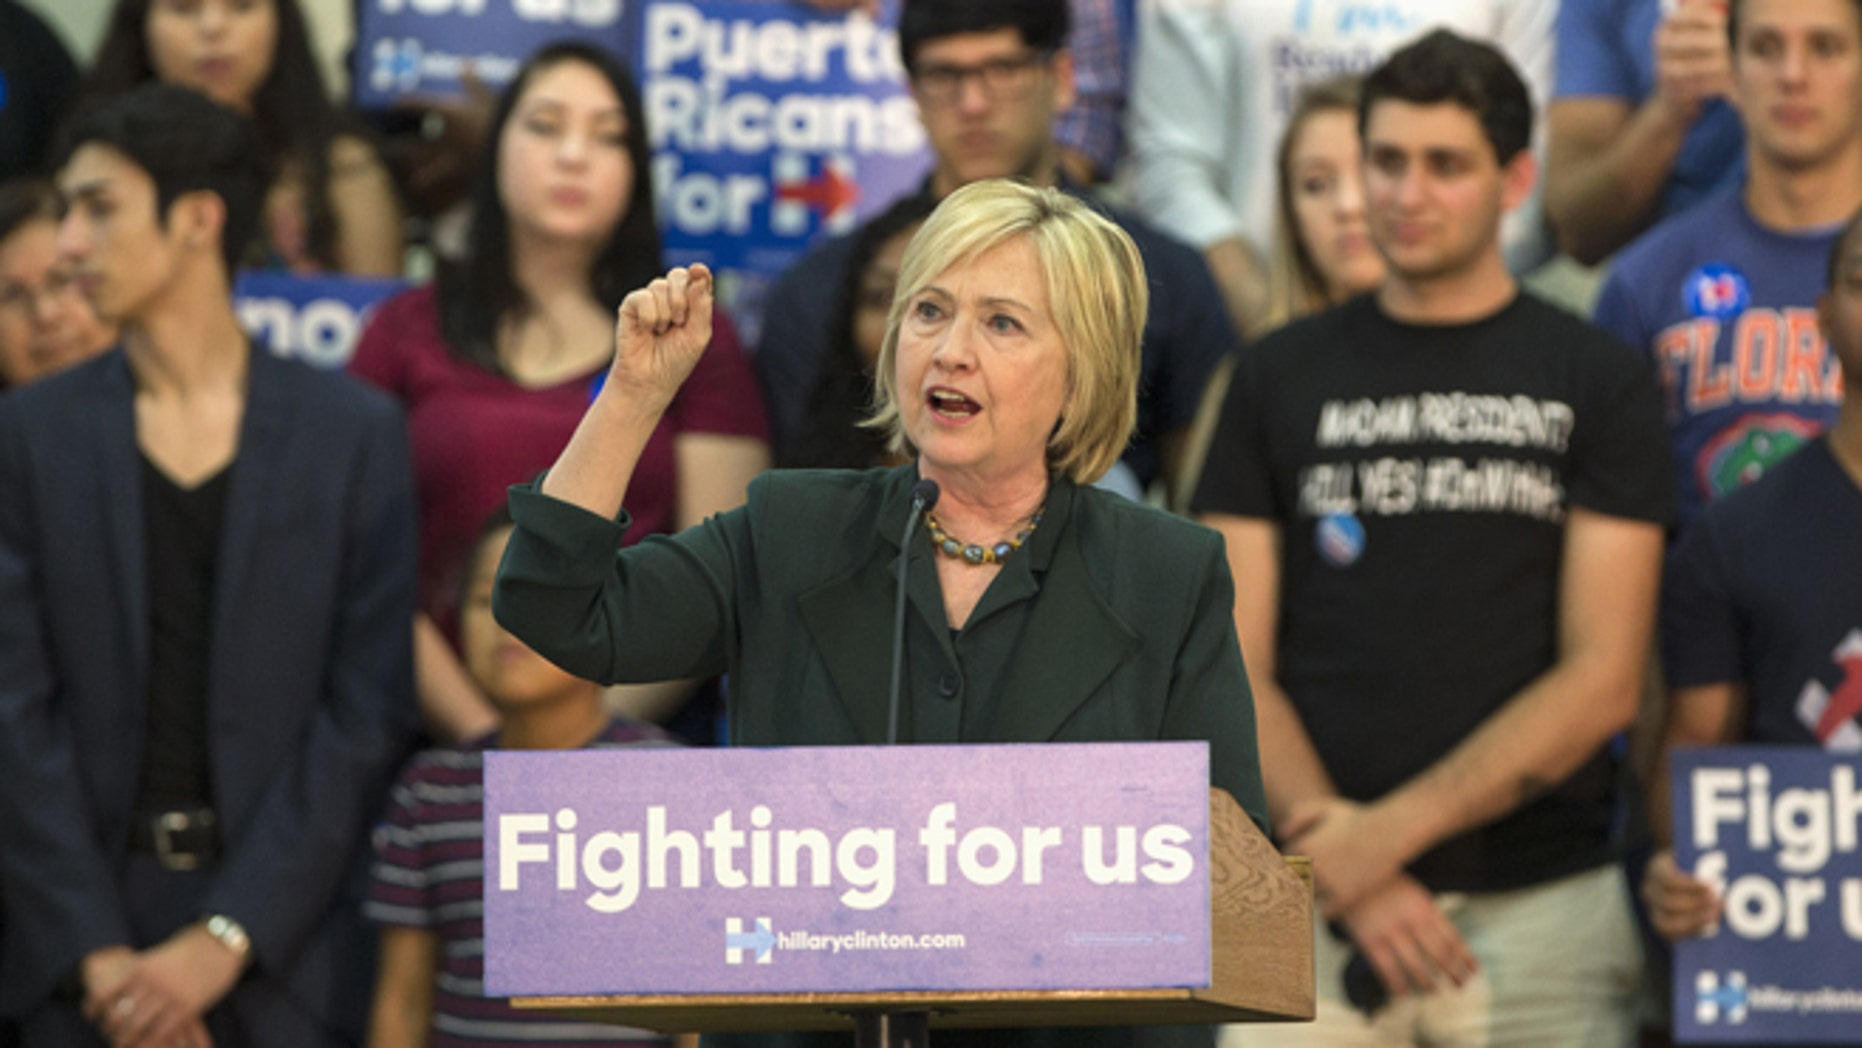 Democratic presidential candidate Hillary Clinton speaks at a Grassroots Organizing Event at the Meadow Woods Recreation Center, Wednesday, Dec., 2, 2015, in Orlando, Fla. (AP Photo/Willie J. Allen Jr.)